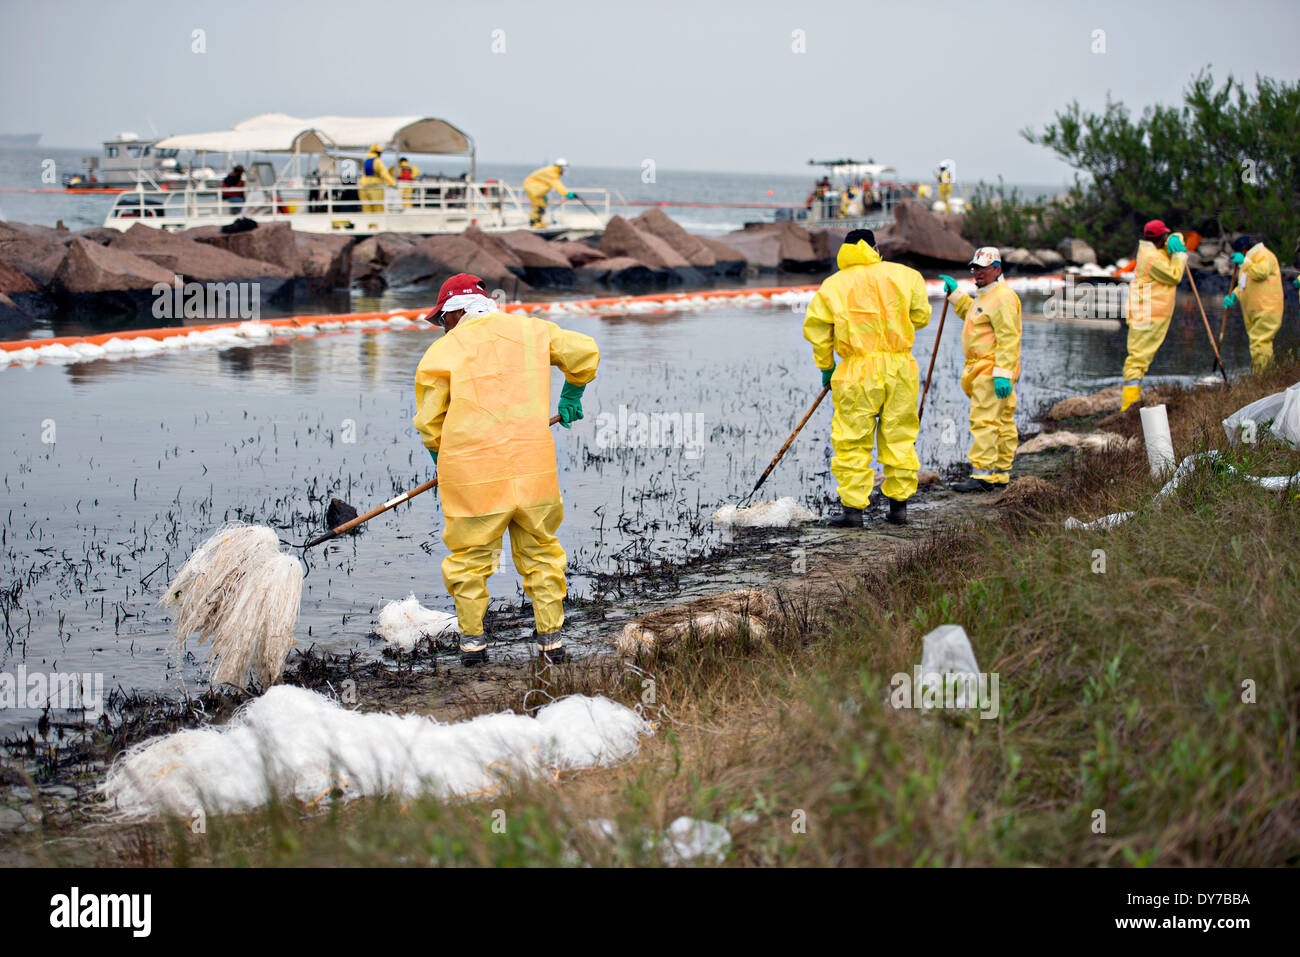 Responders work to clean up oil with absorbent pom-poms and rakes in one of the worst-hit areas from an oil spill April 3, 2014 on Galveston Island, Texas. - Stock Image